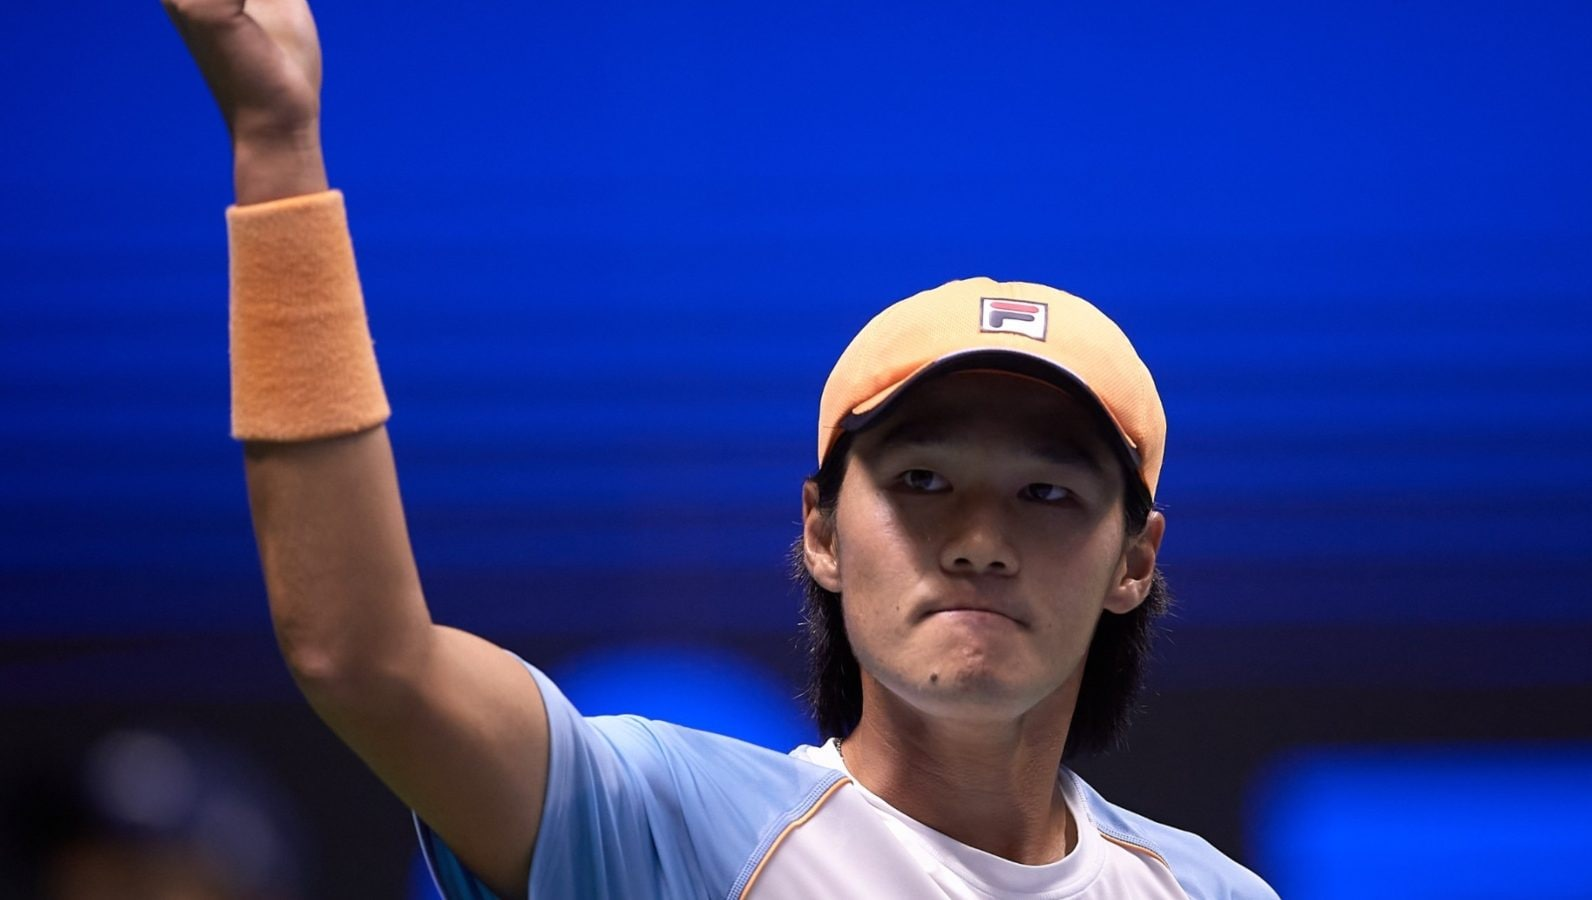 Kwon Soonwoo's Astana Open Title Makes Him 1st South Korean to Win on ATP Tour in 18 Years